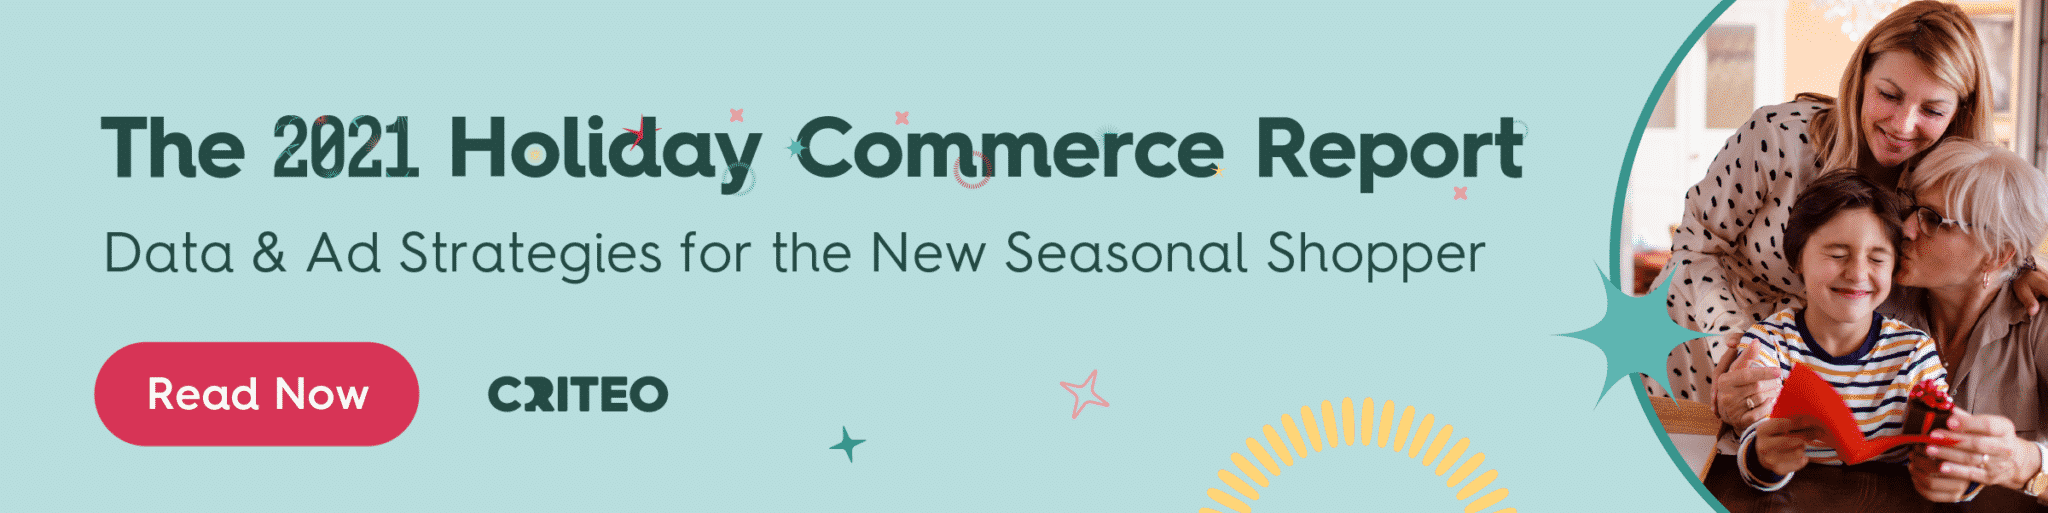 Click here to download the 2021 holiday commerce report.